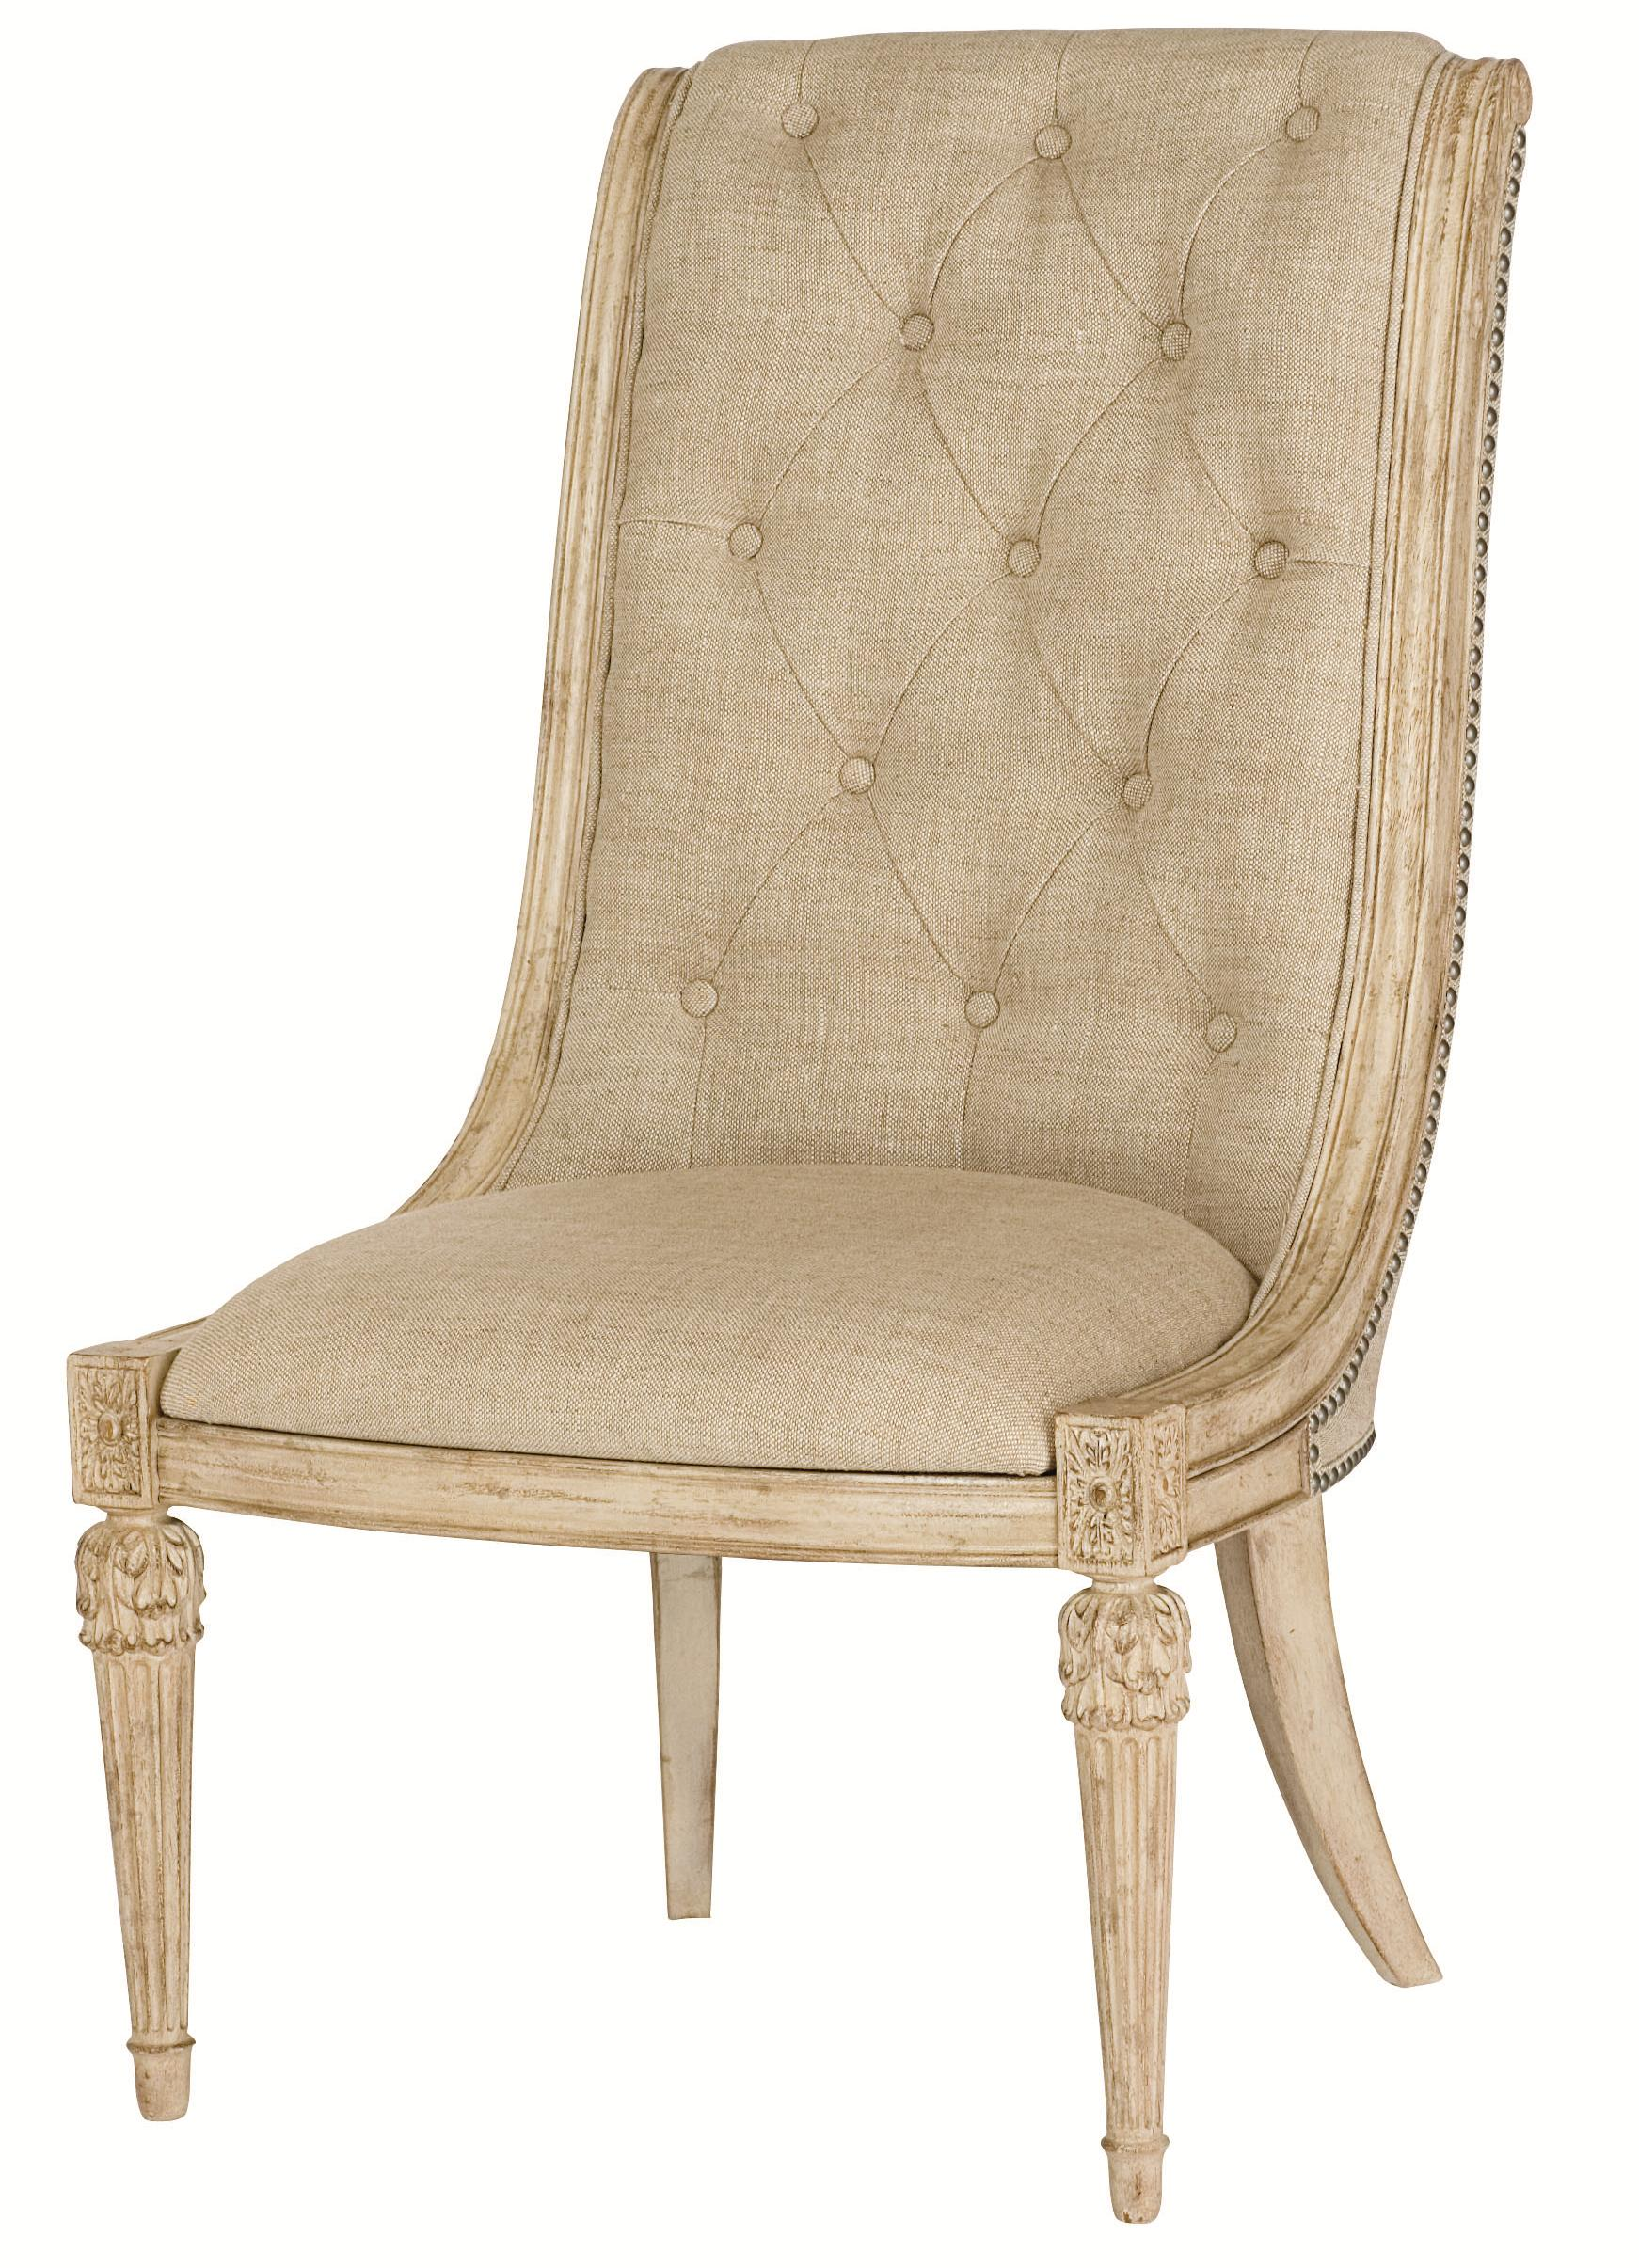 American Drew Jessica McClintock Home - The Boutique Collection Upholstered Side Chair - Item Number: 217-636W